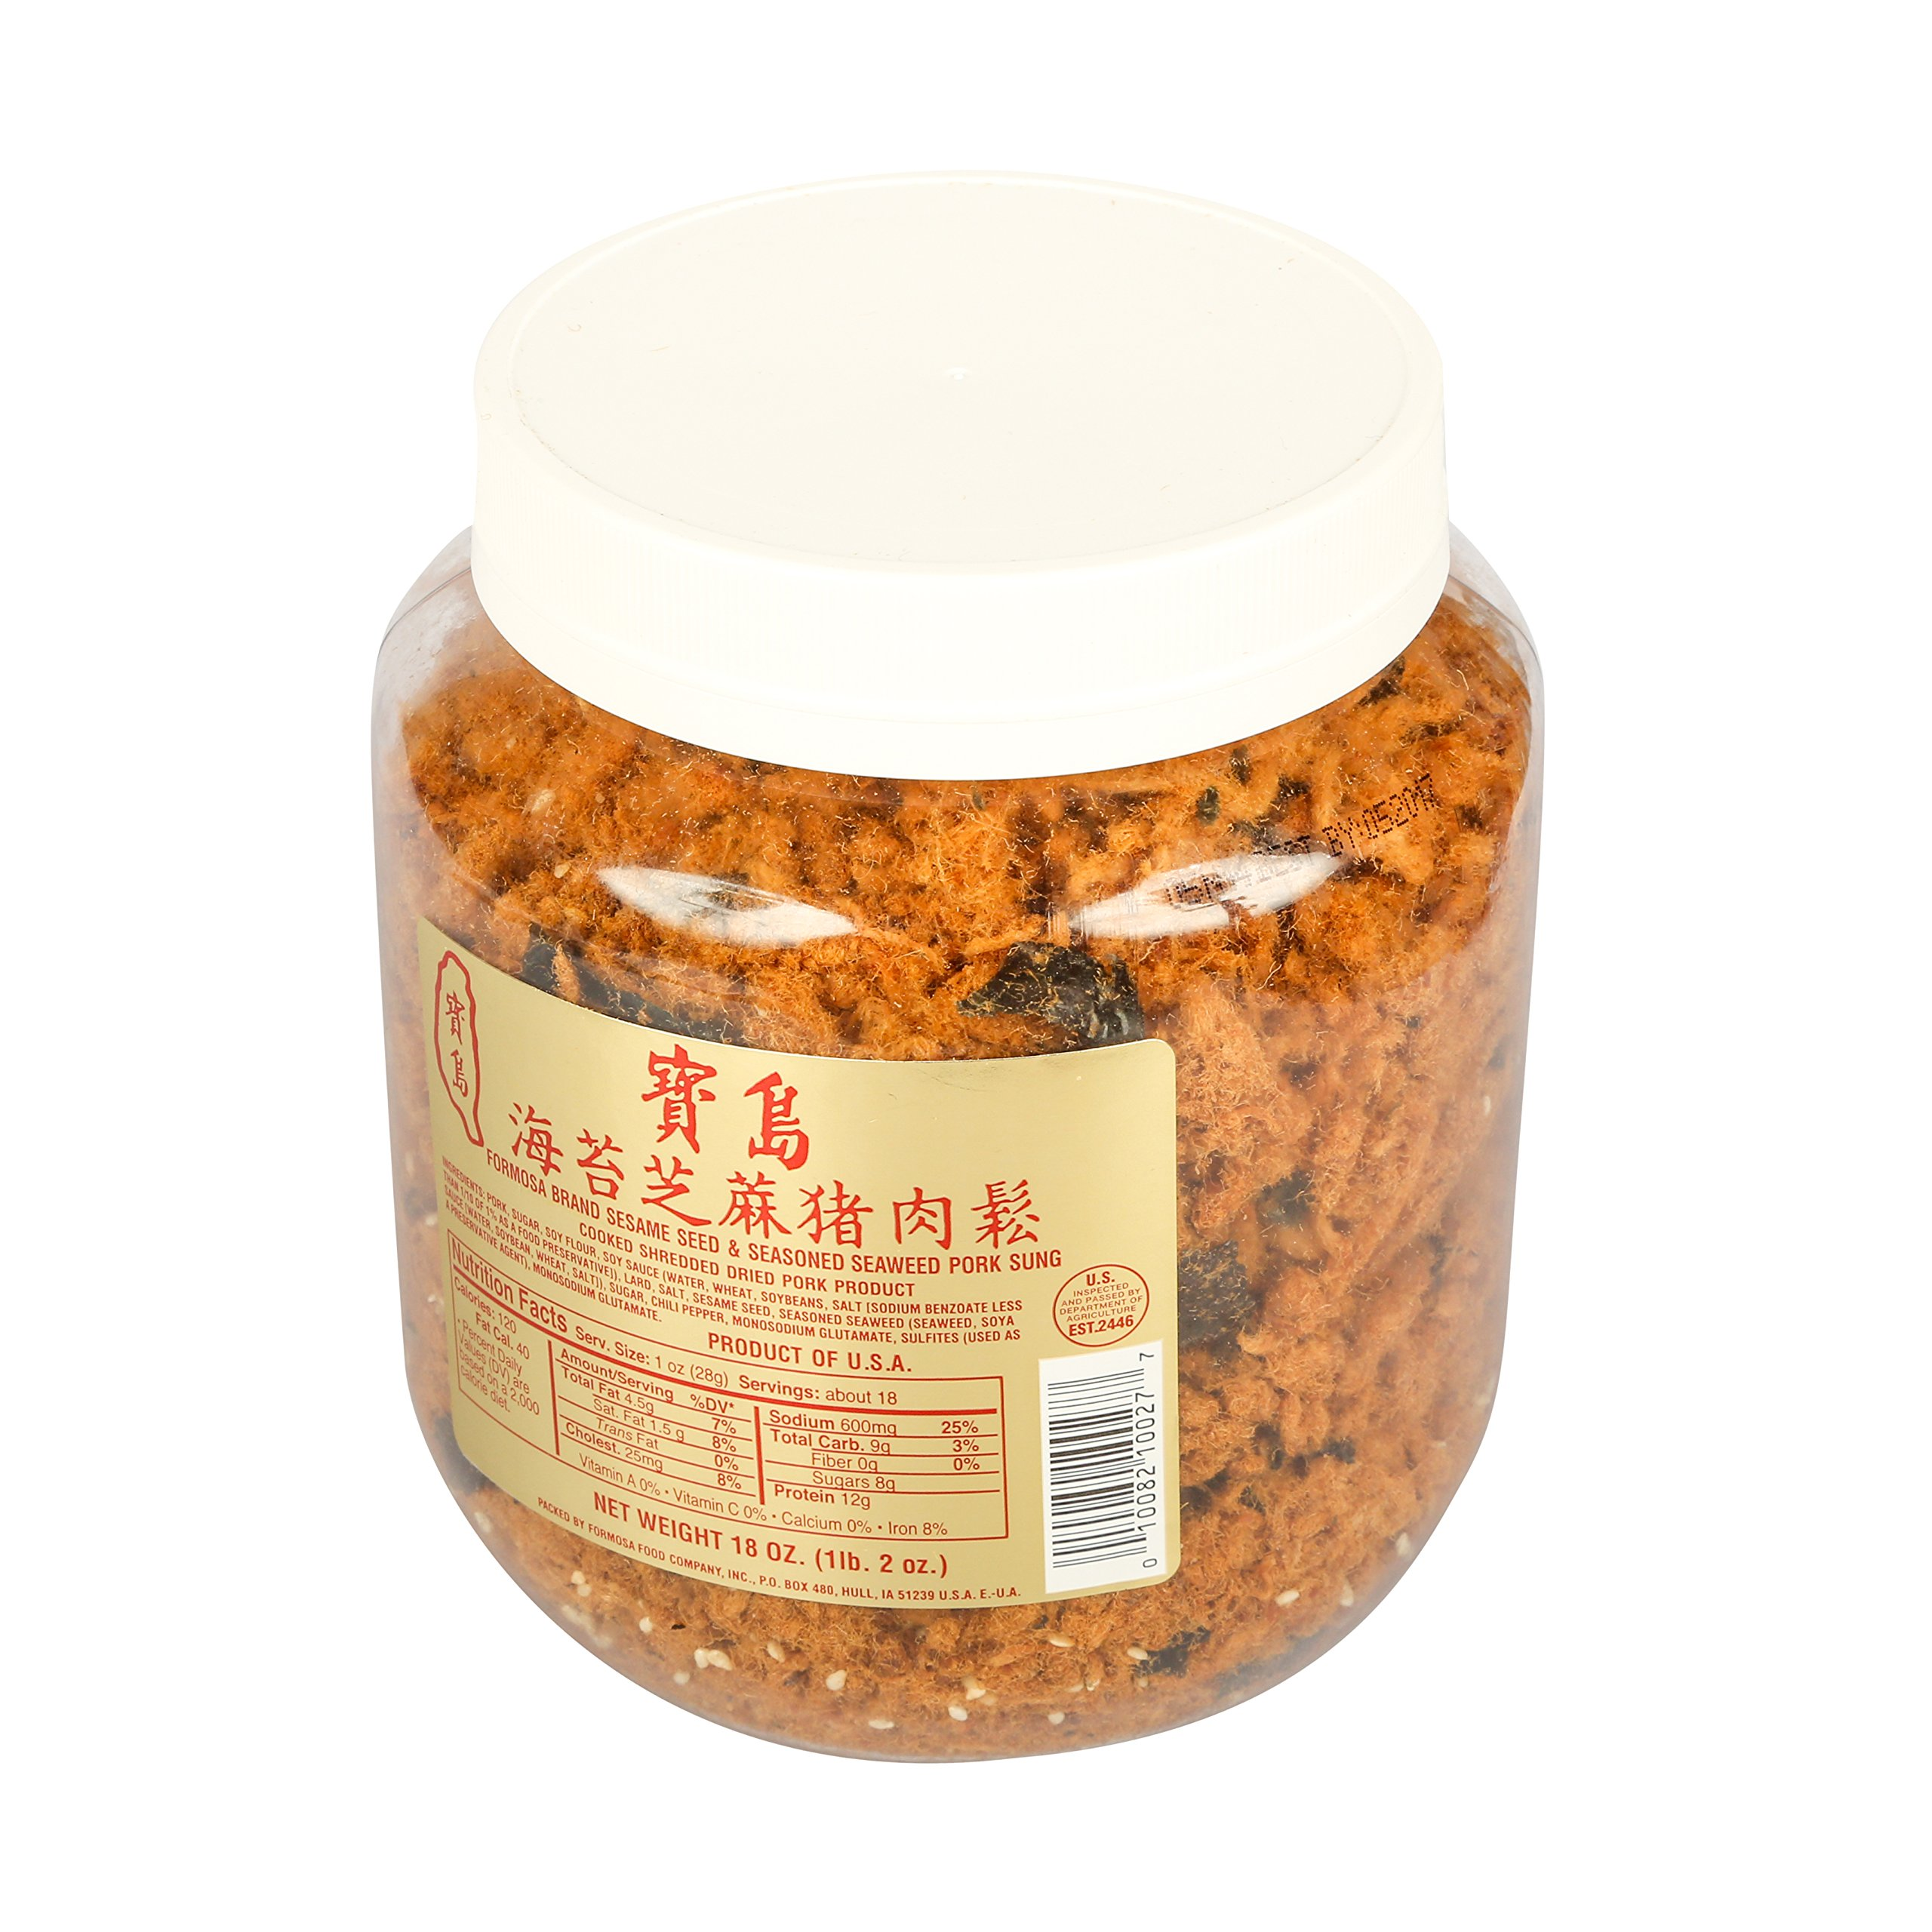 Formosa, Dried Sesame Seed and Seaweed Pork Sung, 20 oz